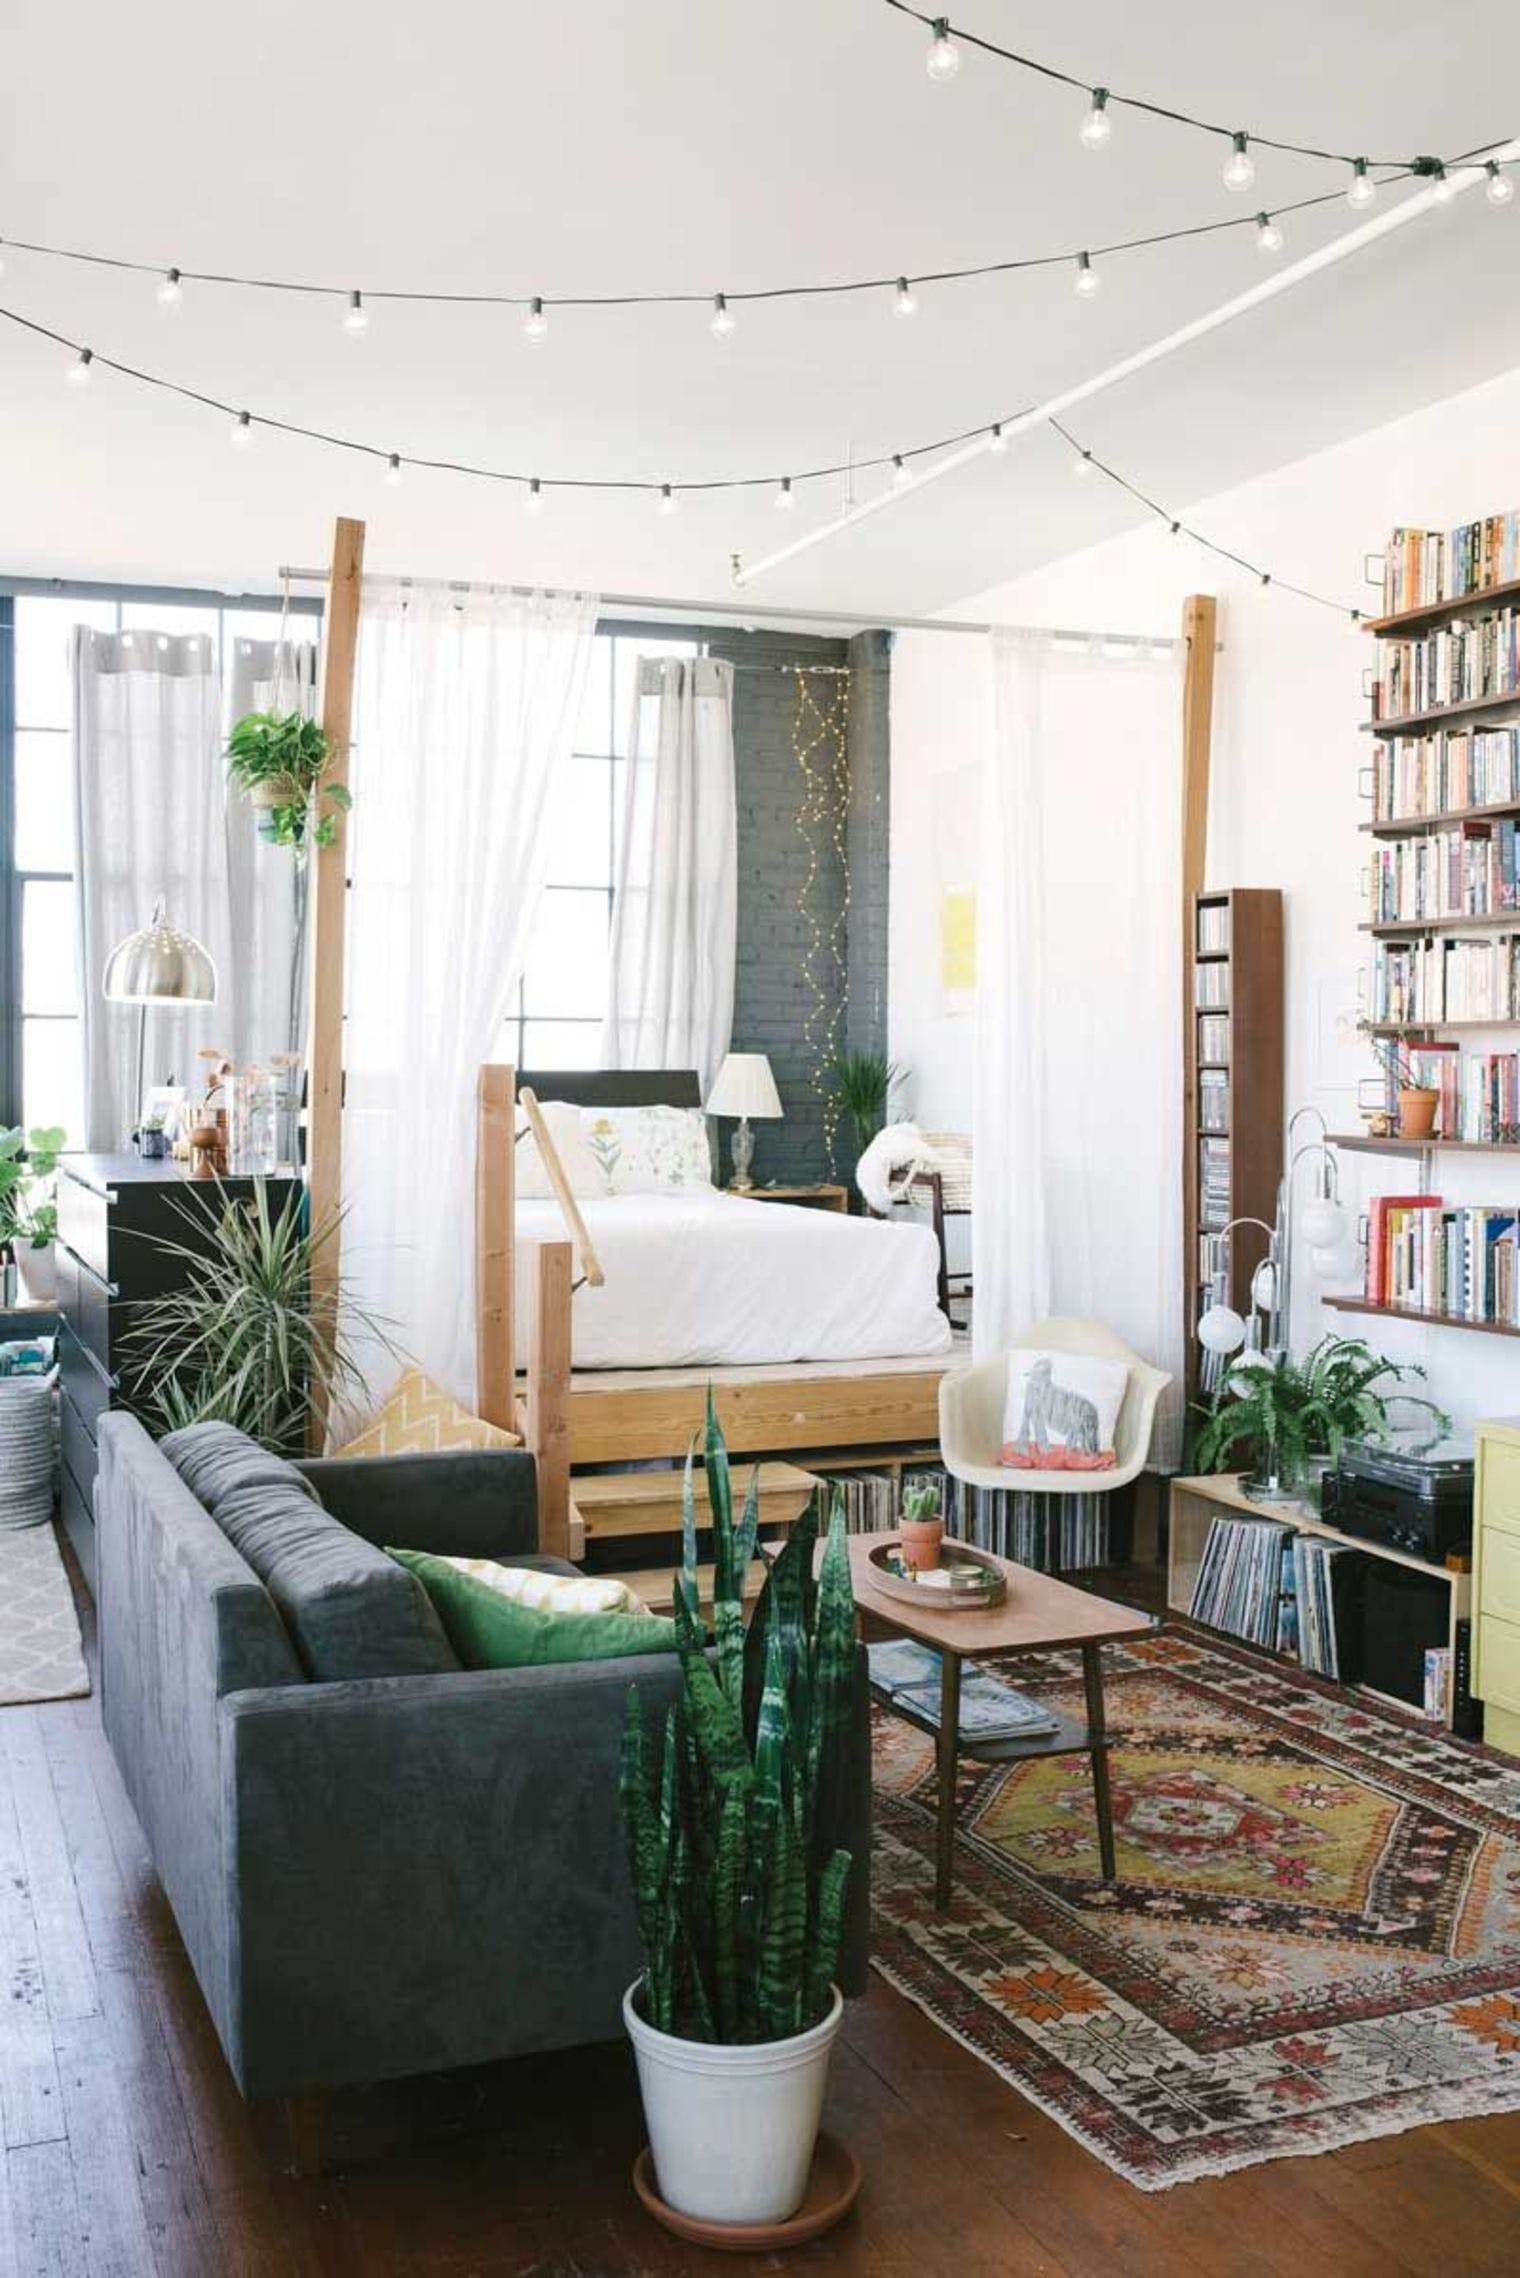 https://gardencreator.net/wp-content/uploads/2017/05/privacy-please-ideas-for-carving-out-a-cozy-bedroom-in-a-studio-within-best-studio-apartment-garden-grove-design-ideas.jpg